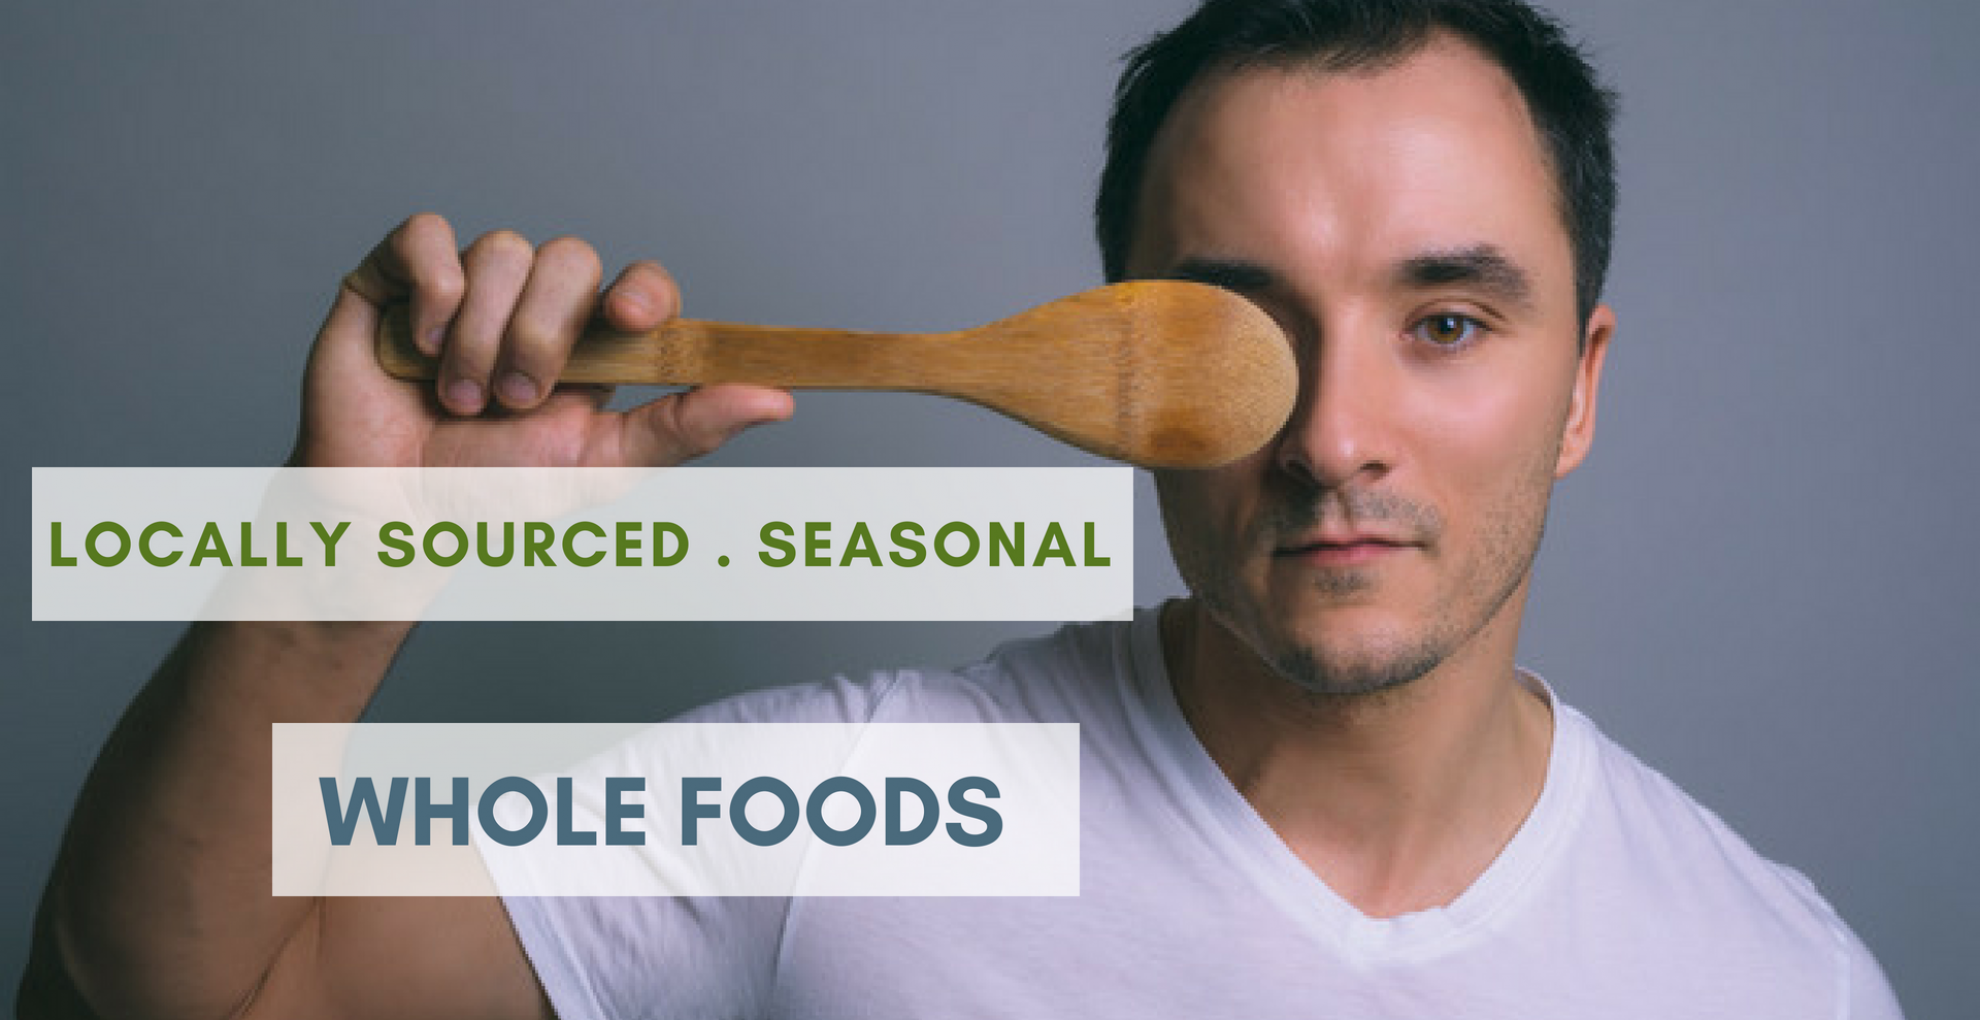 Catering - Local, Seasonal, Whole Foods